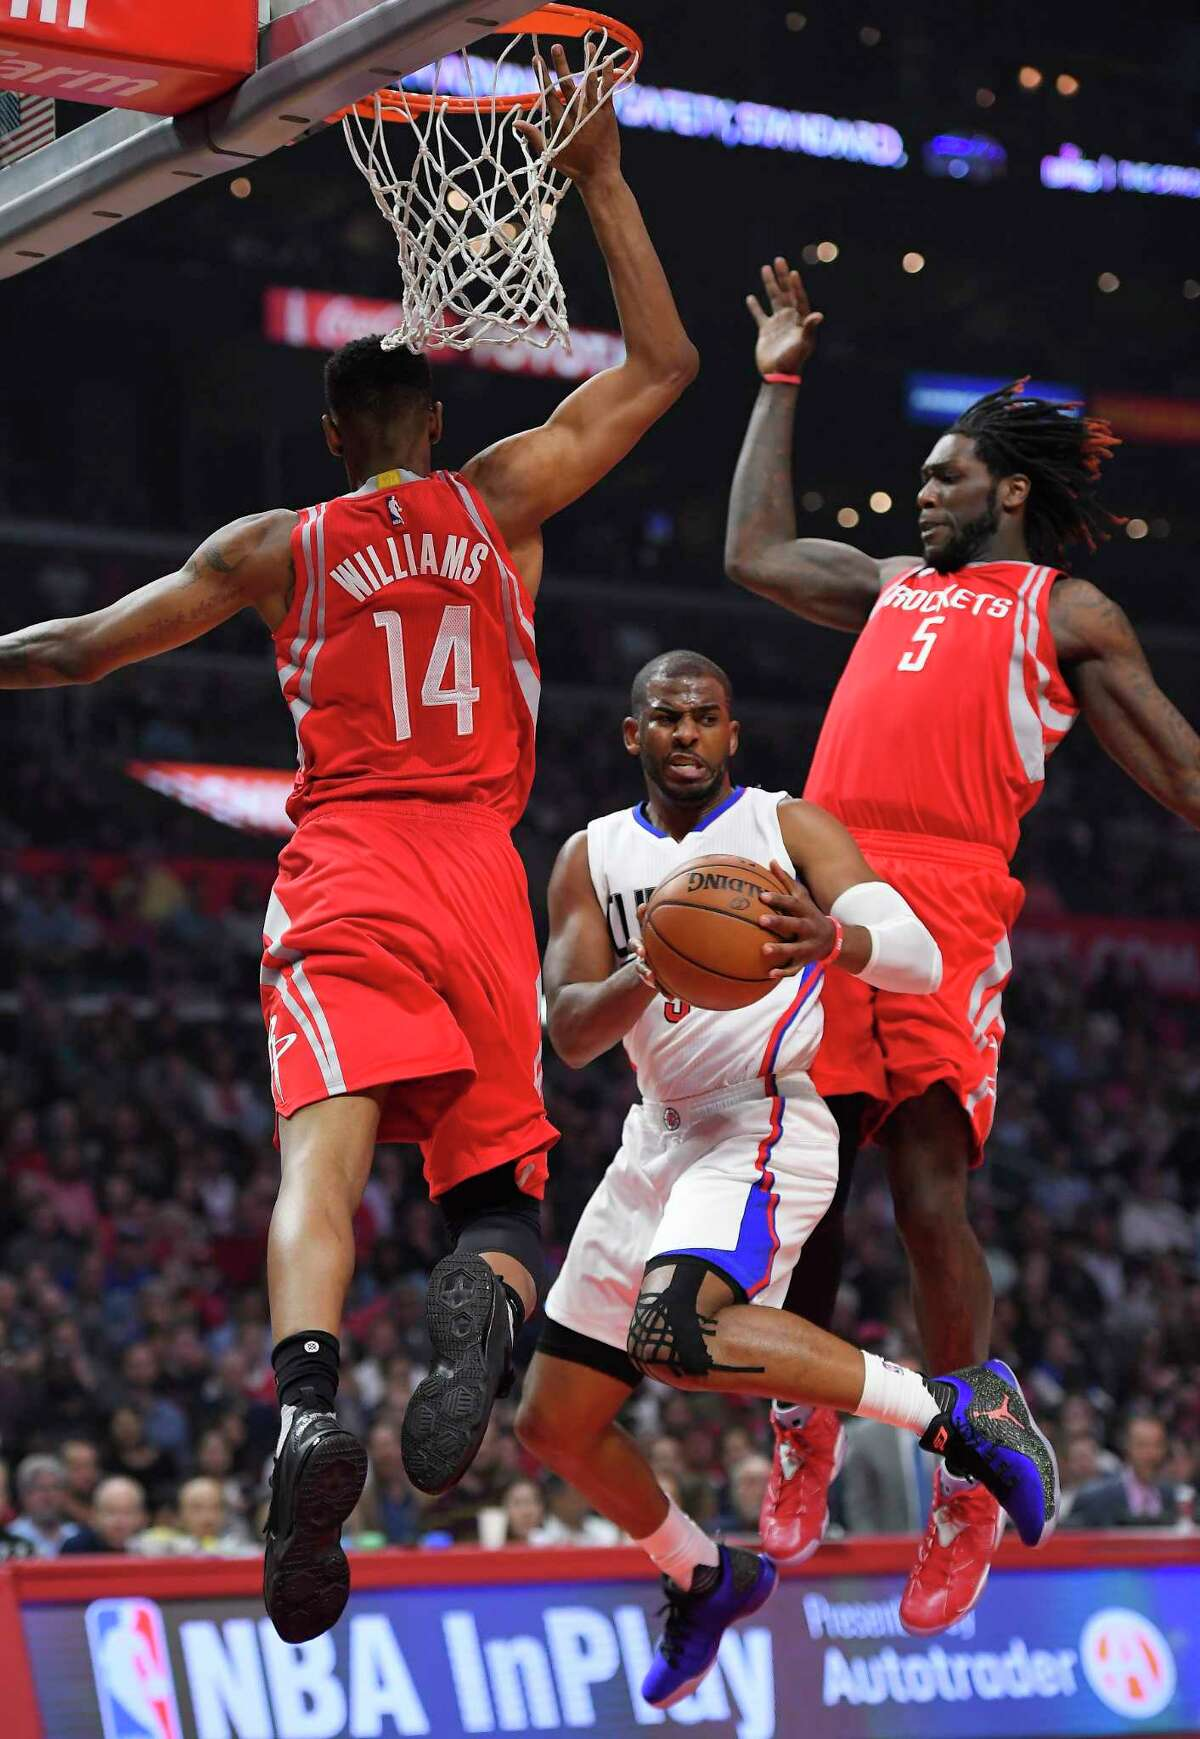 Los Angeles Clippers guard Chris Paul, center, passes the ball while under pressure from Houston Rockets forward Troy Williams, left, and forward Montrezl Harrell during the first half of an NBA basketball game, Monday, April 10, 2017, in Los Angeles. (AP Photo/Mark J. Terrill)